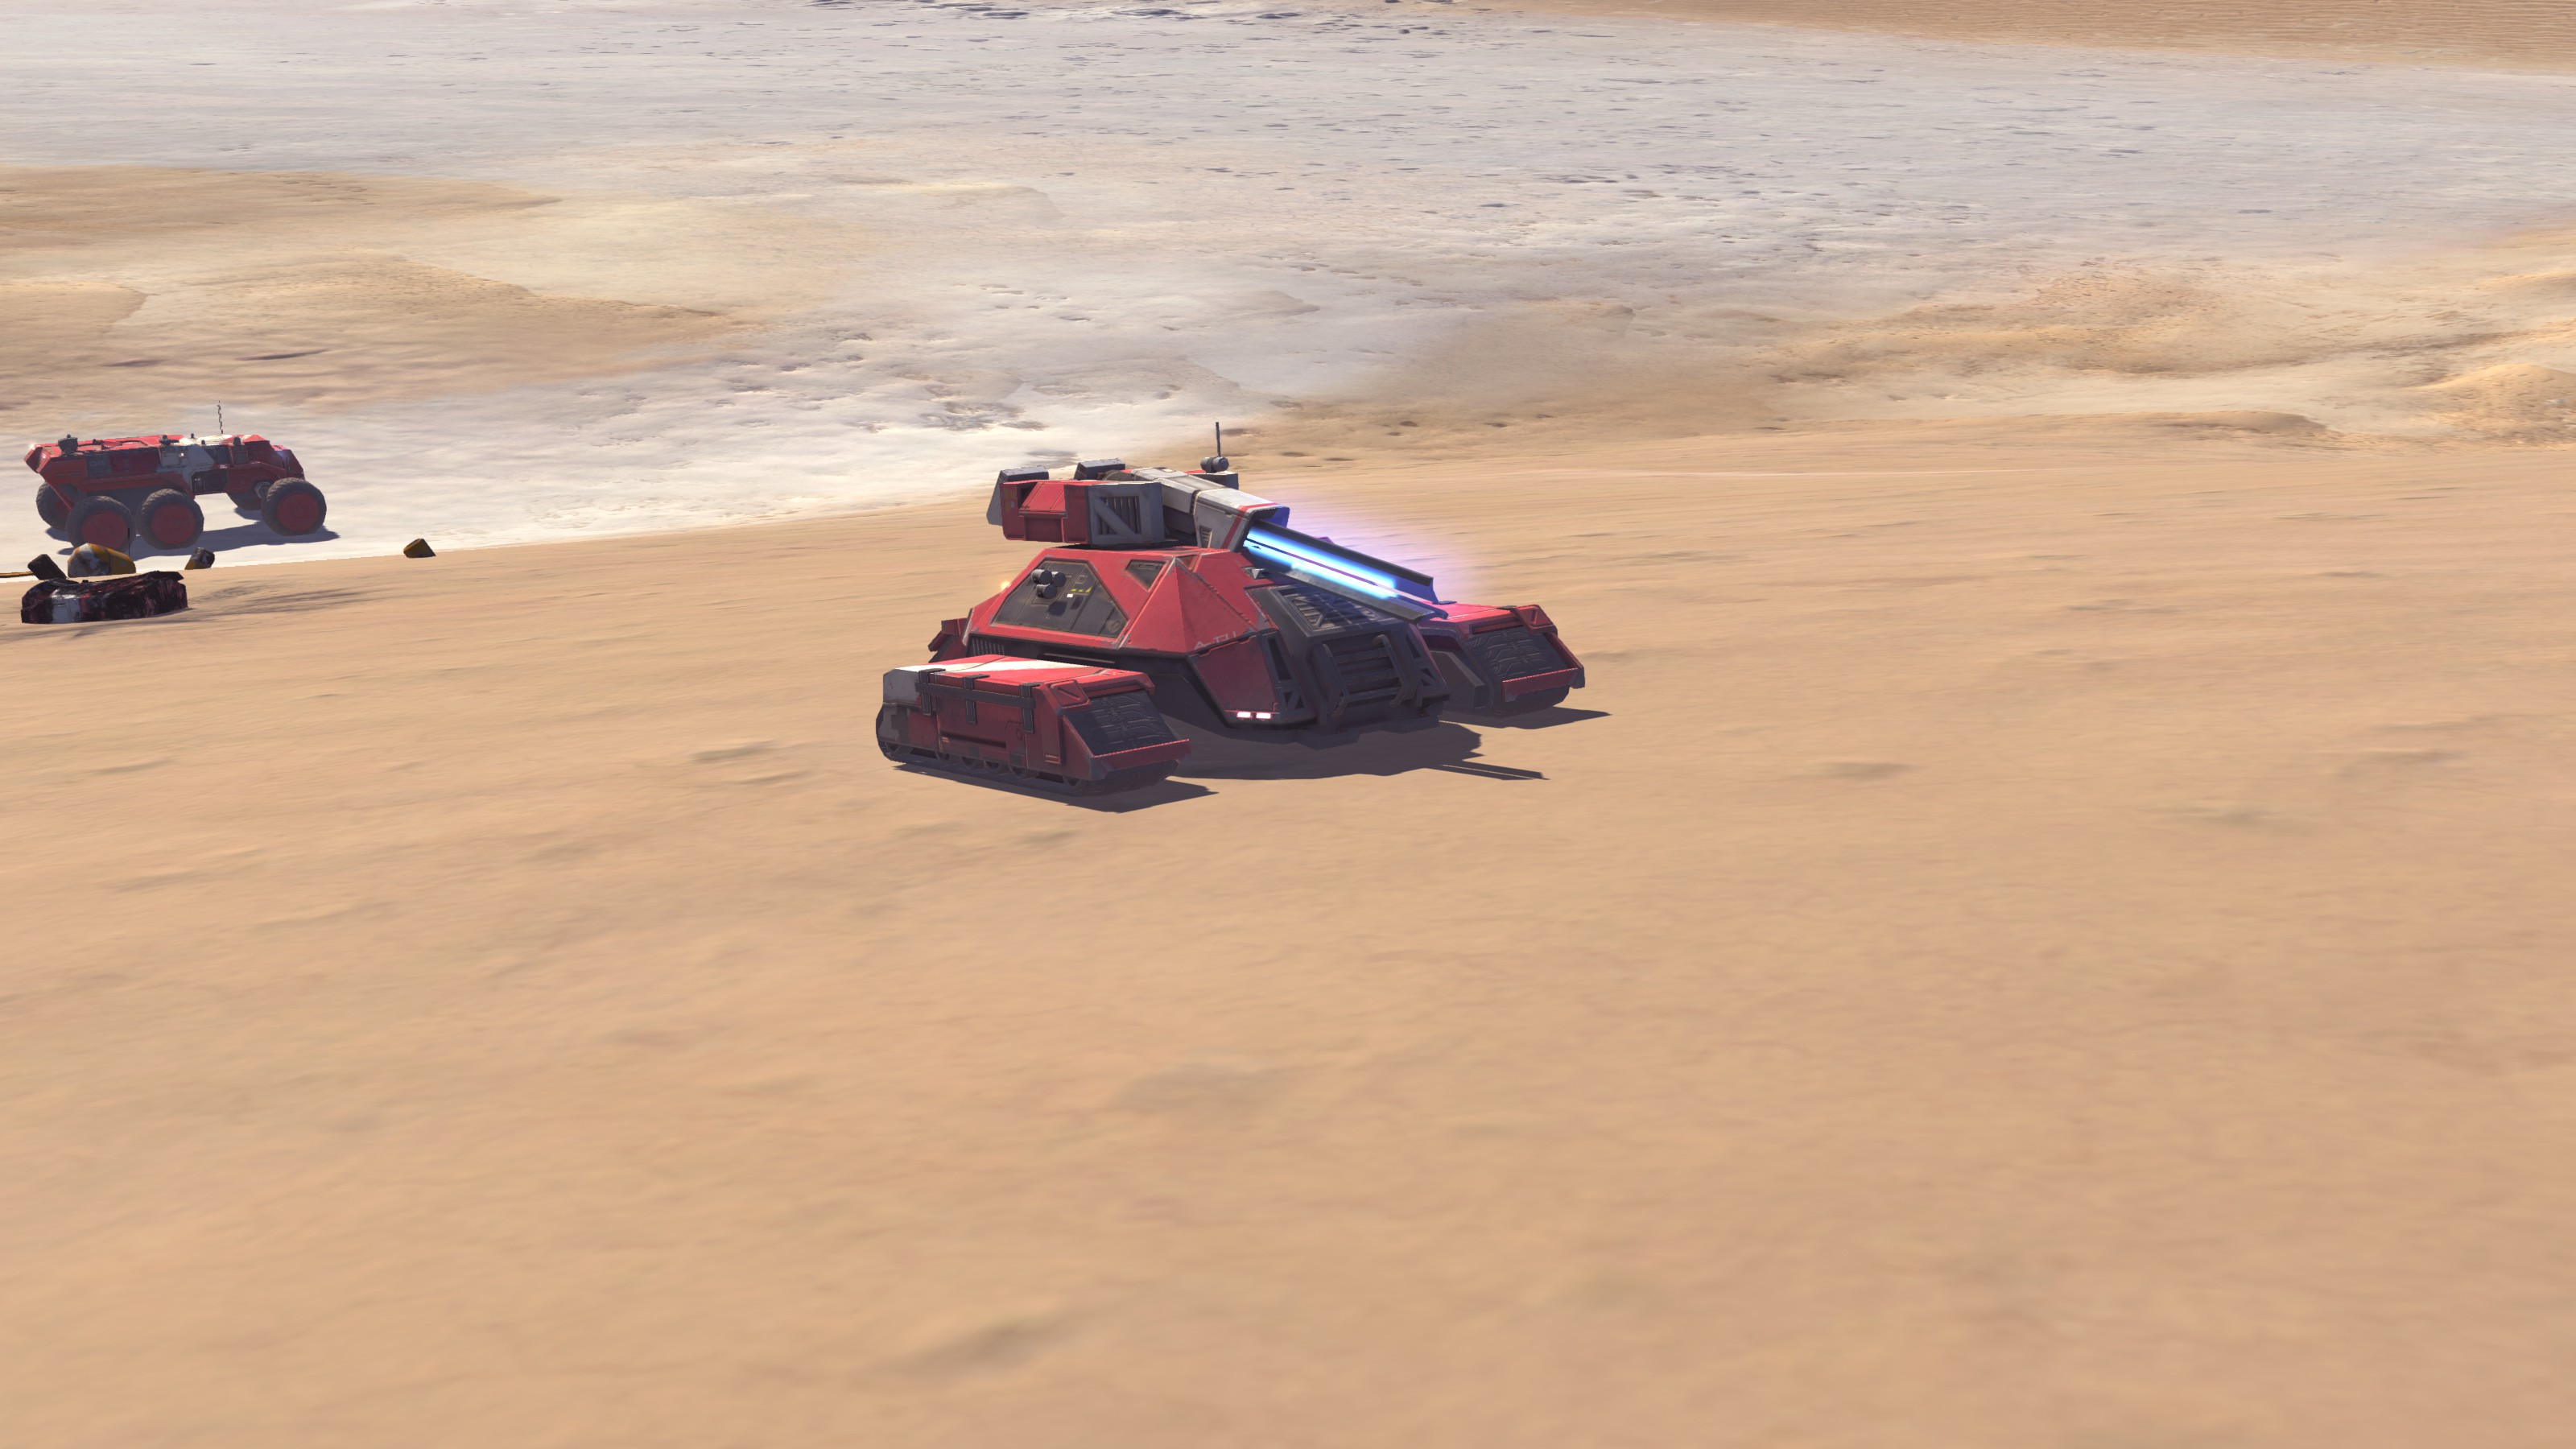 Deserts of Kharak Soban Fleet Pack - Railgun - Fists of Heaven